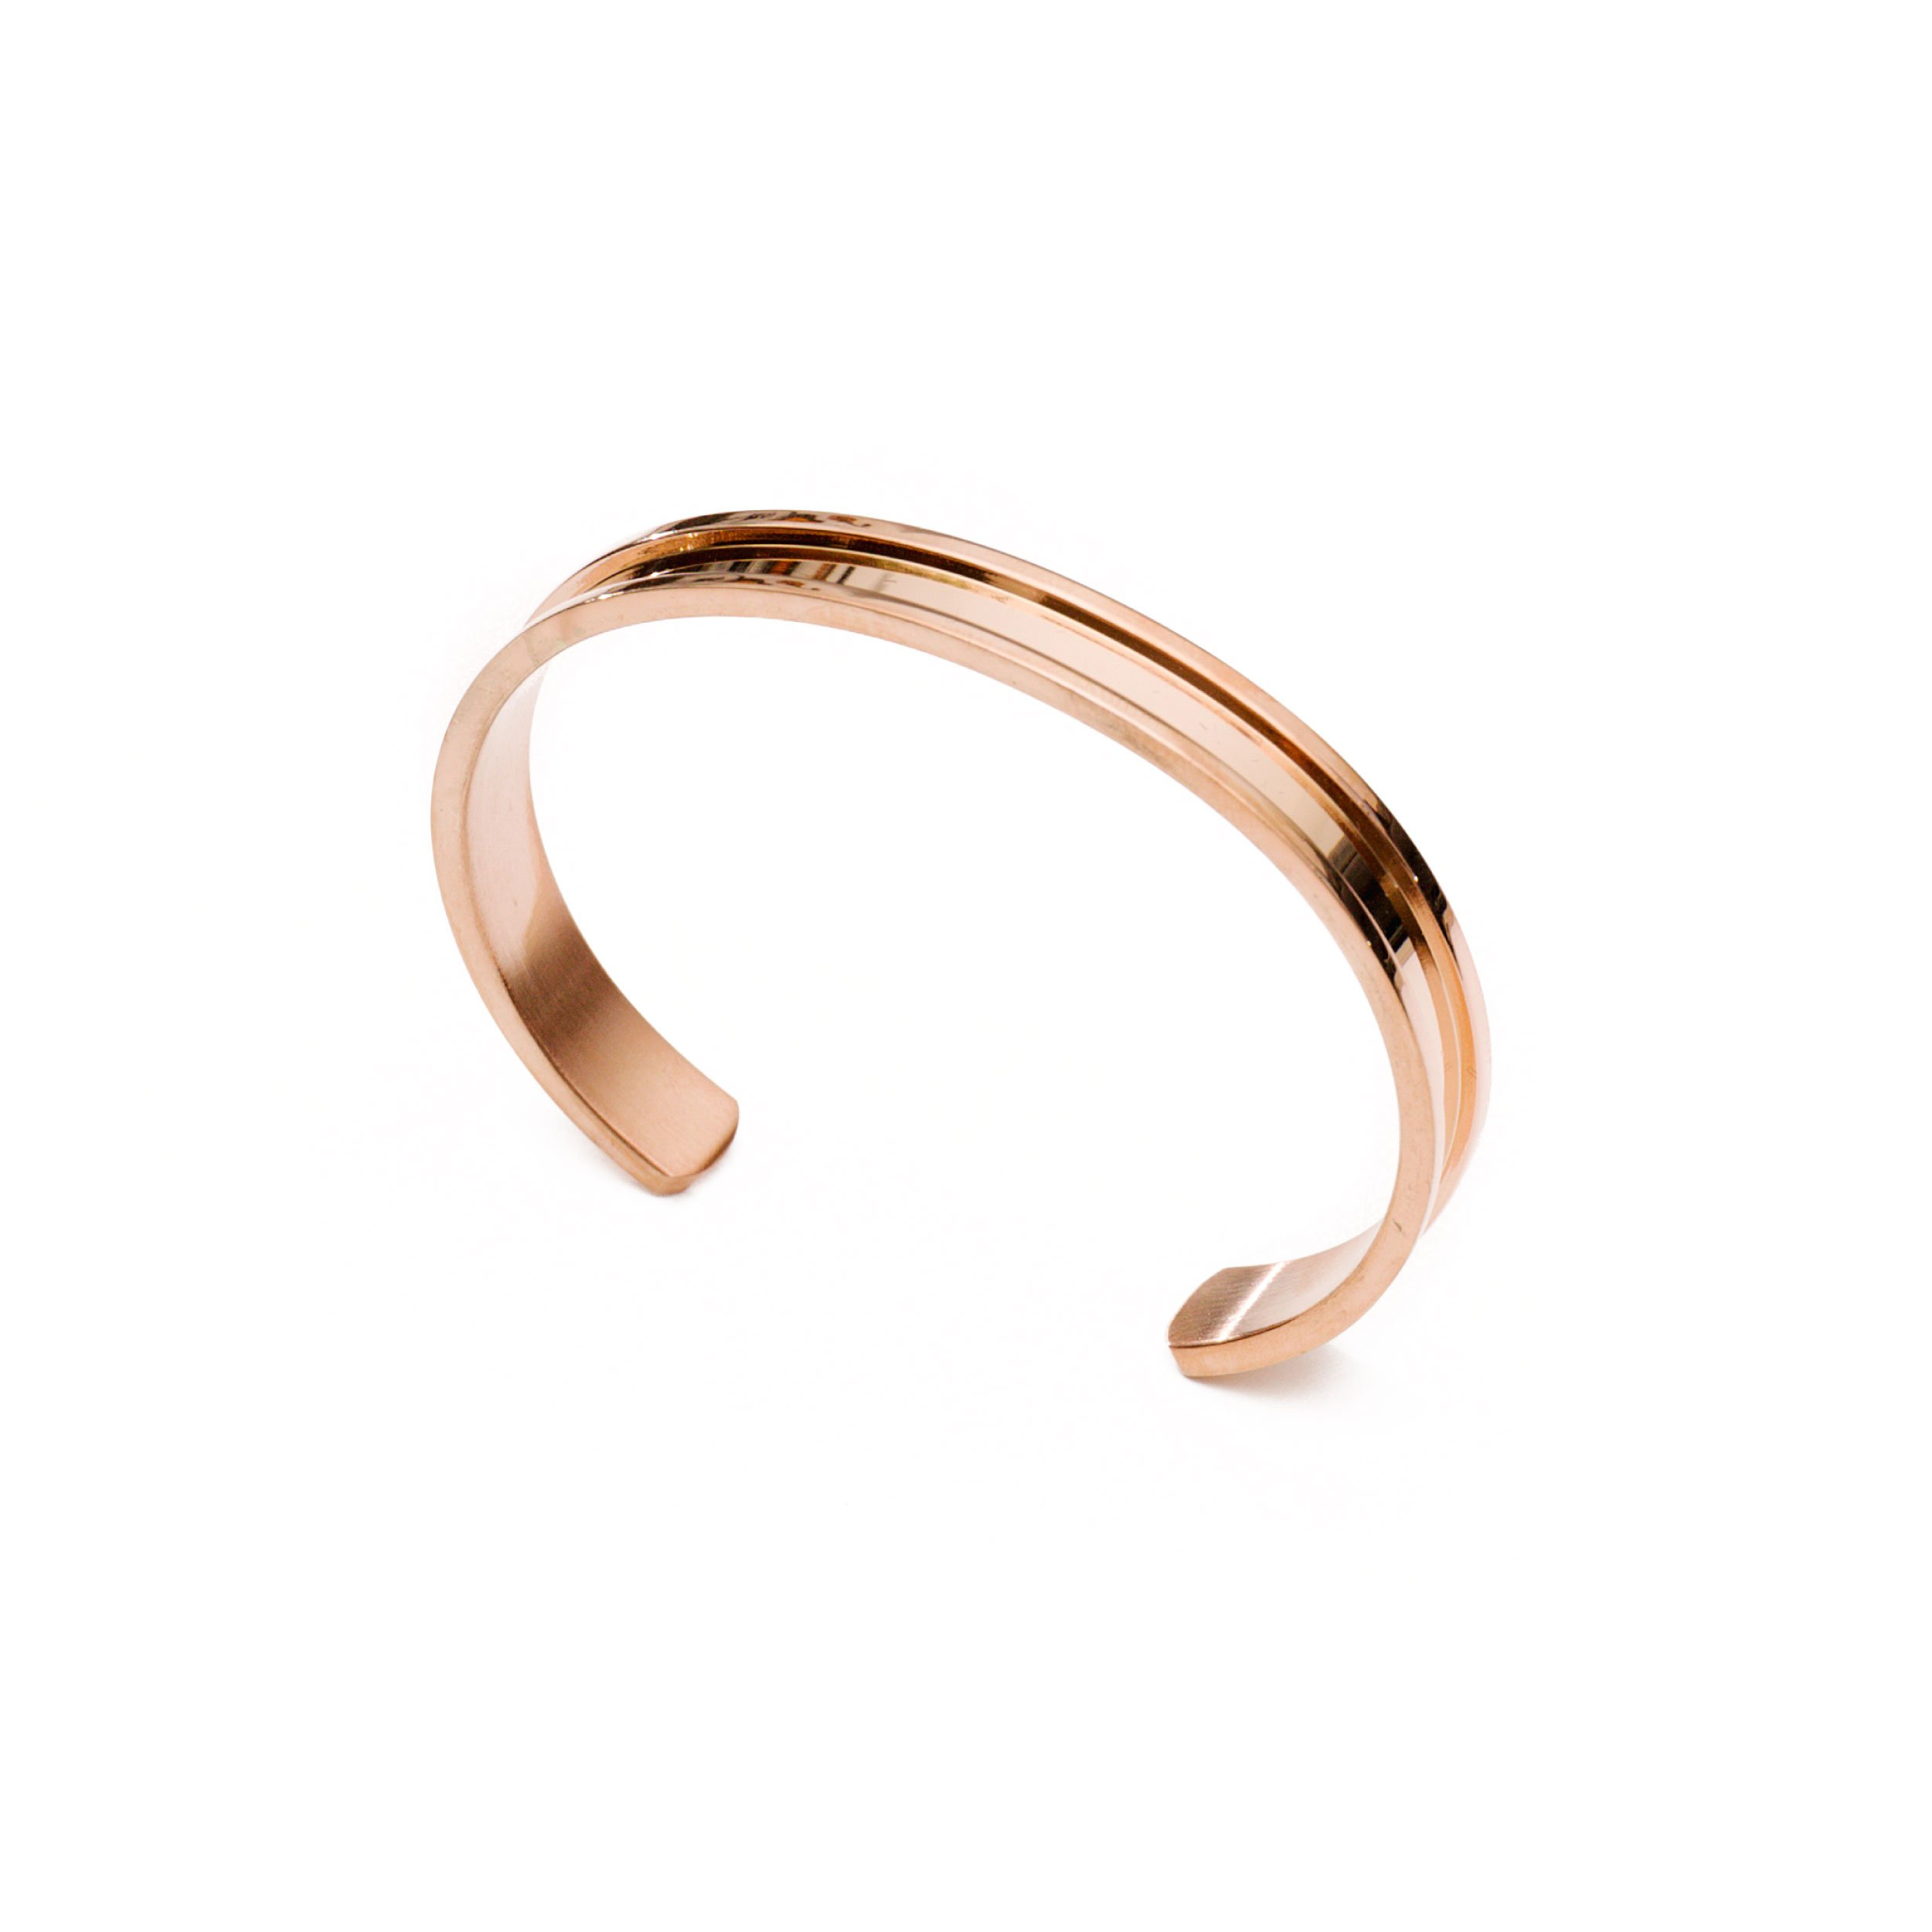 Lucky Lady Collections Hair Tie Bracelet by Rose Gold Grooved Cuff Bangle (1 Pack) | Women's Fashion Bracelets for Comfort and Style | No-Show Hair Elastic Bangles for Girls | Accessory or Gift